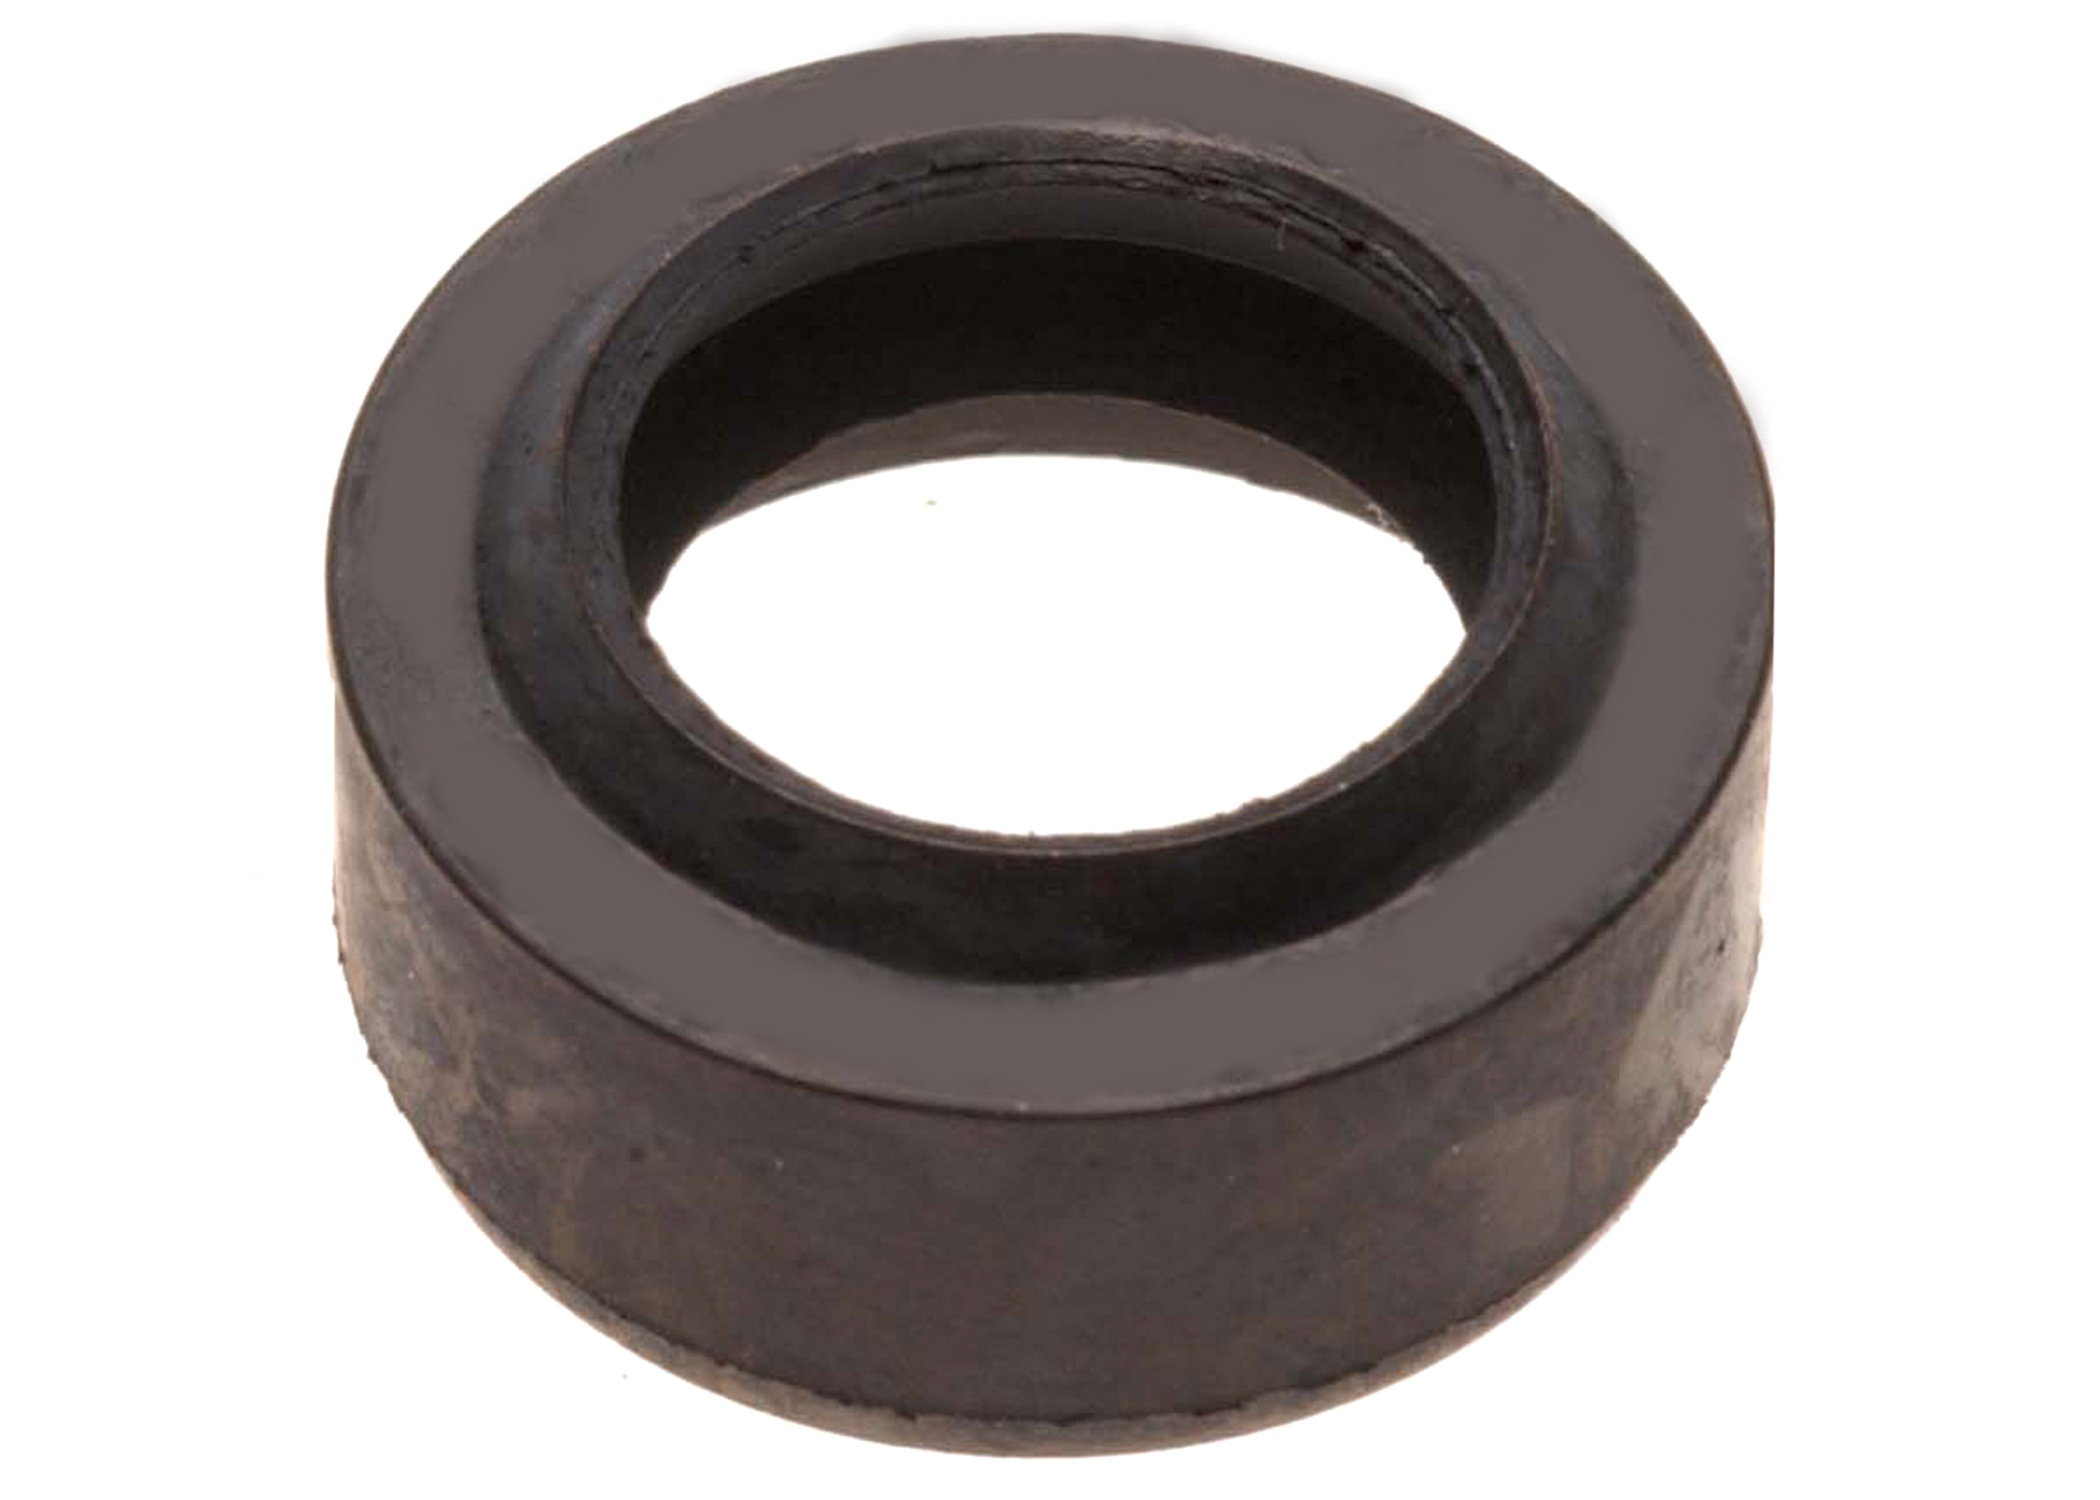 ACDELCO OE SERVICE - Auto Trans Manual Shaft Seal - DCB 8644709